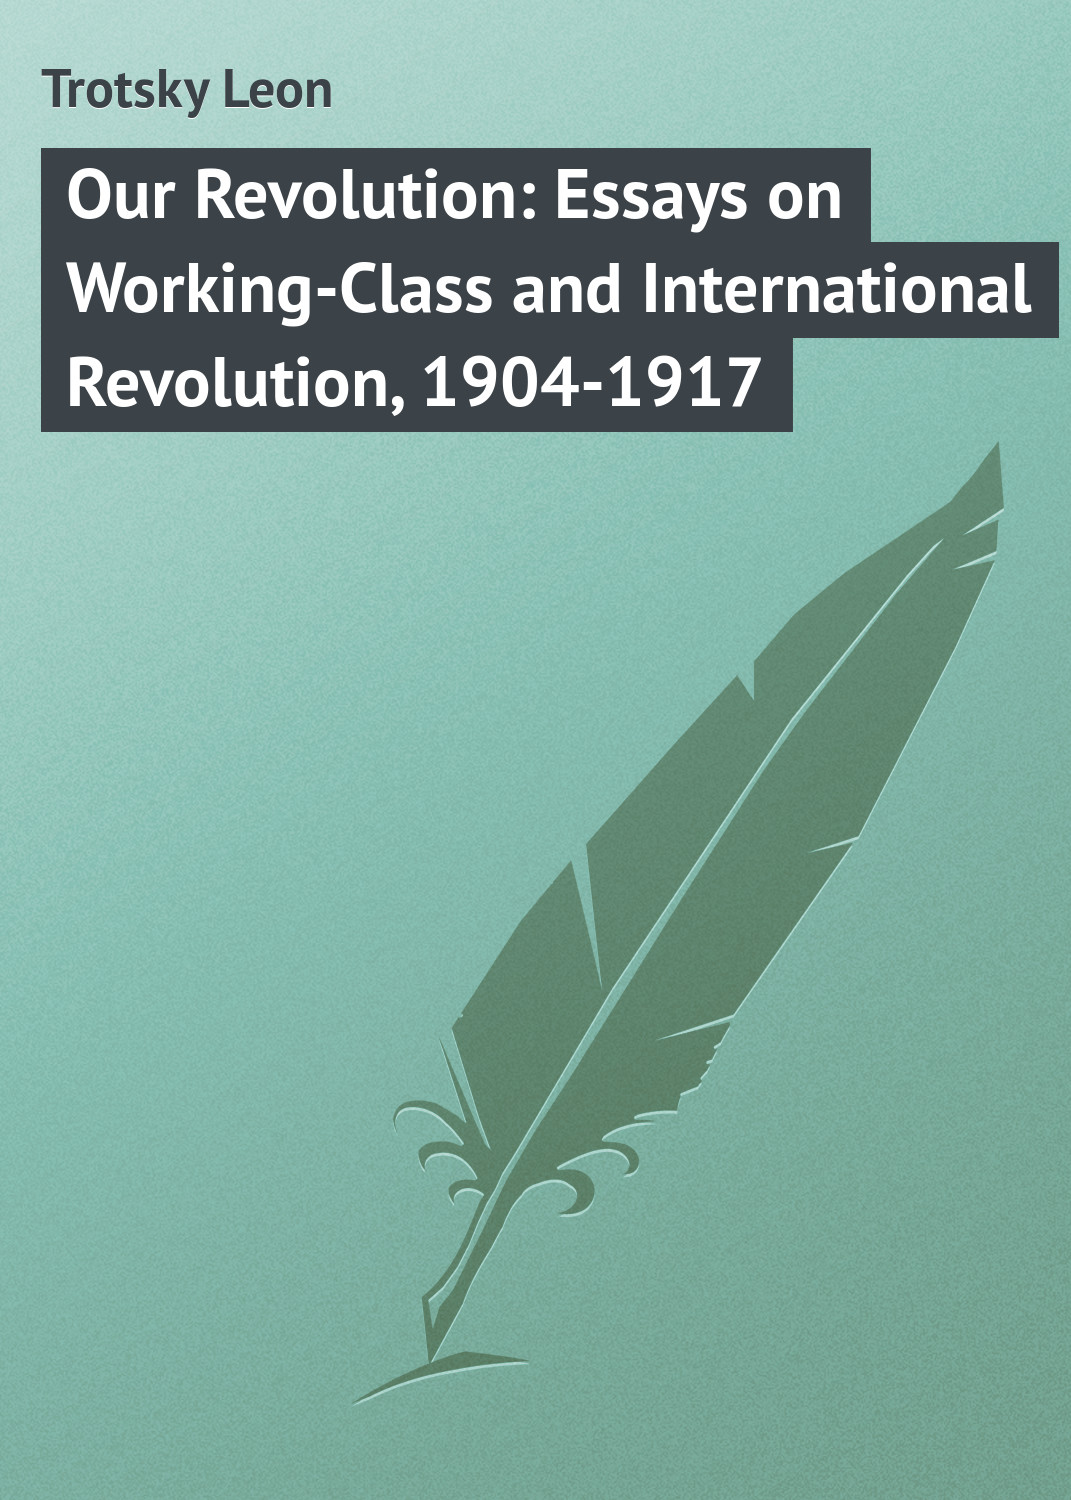 Trotsky Leon Our Revolution: Essays on Working-Class and International Revolution, 1904-1917 london j revolution and other essays